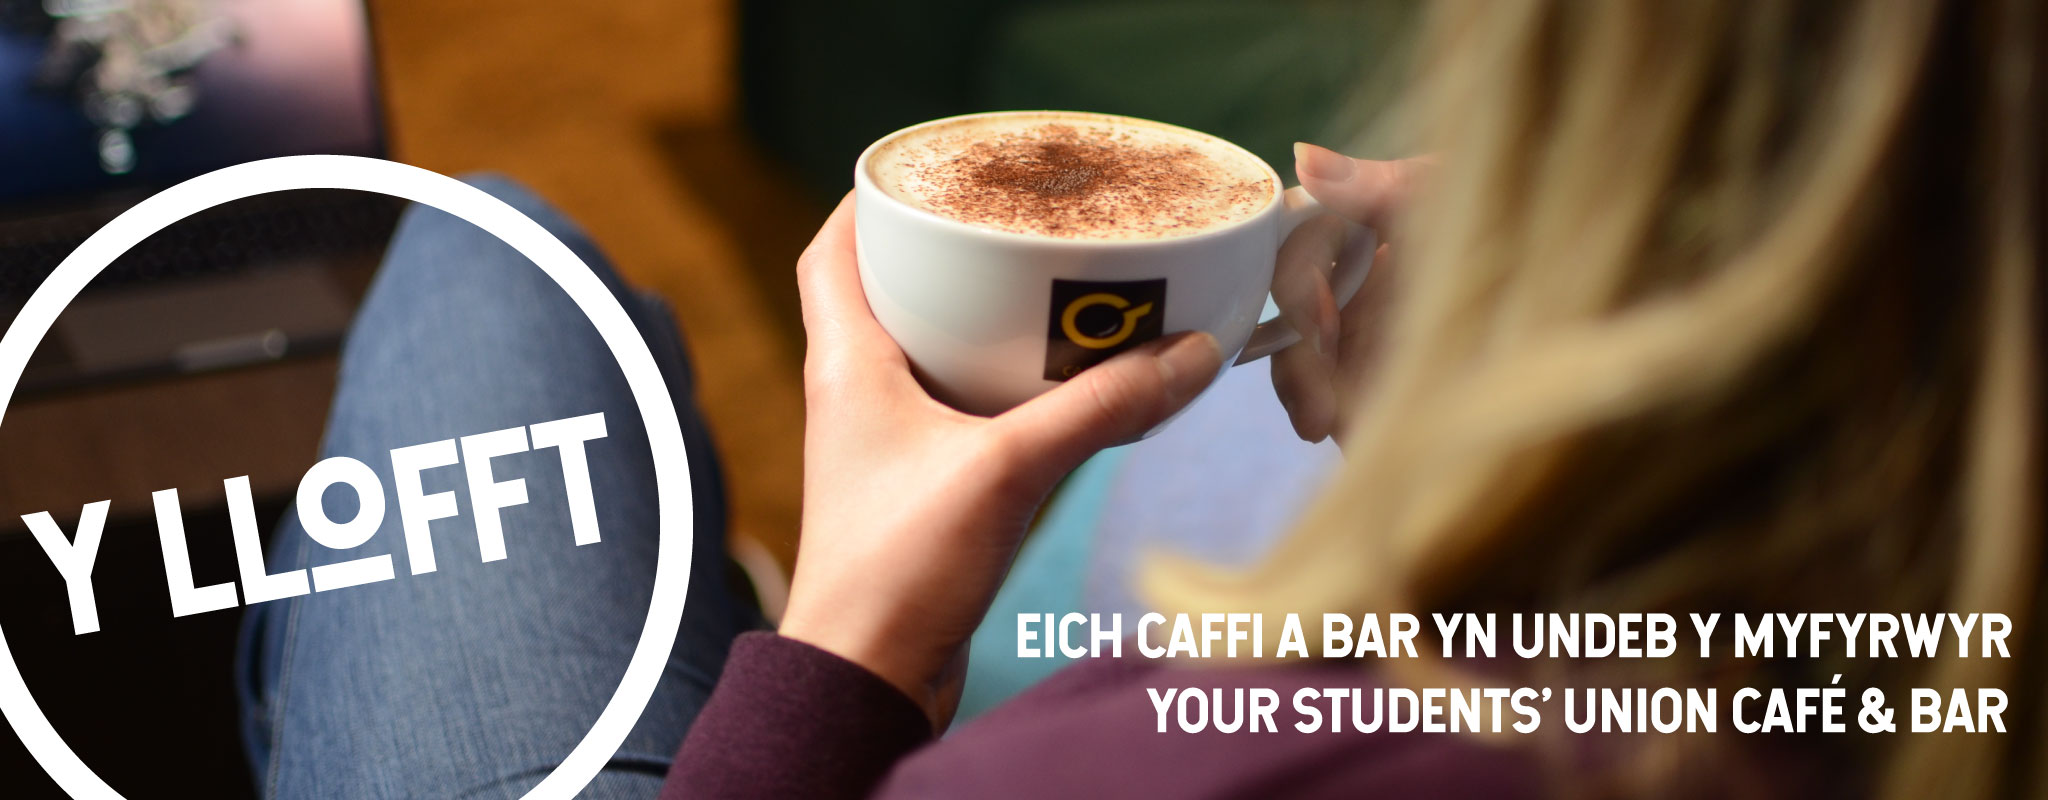 Y Llofft banner. An image of someone enjoying a cup of coffee in the cafe in a large comfy seat.